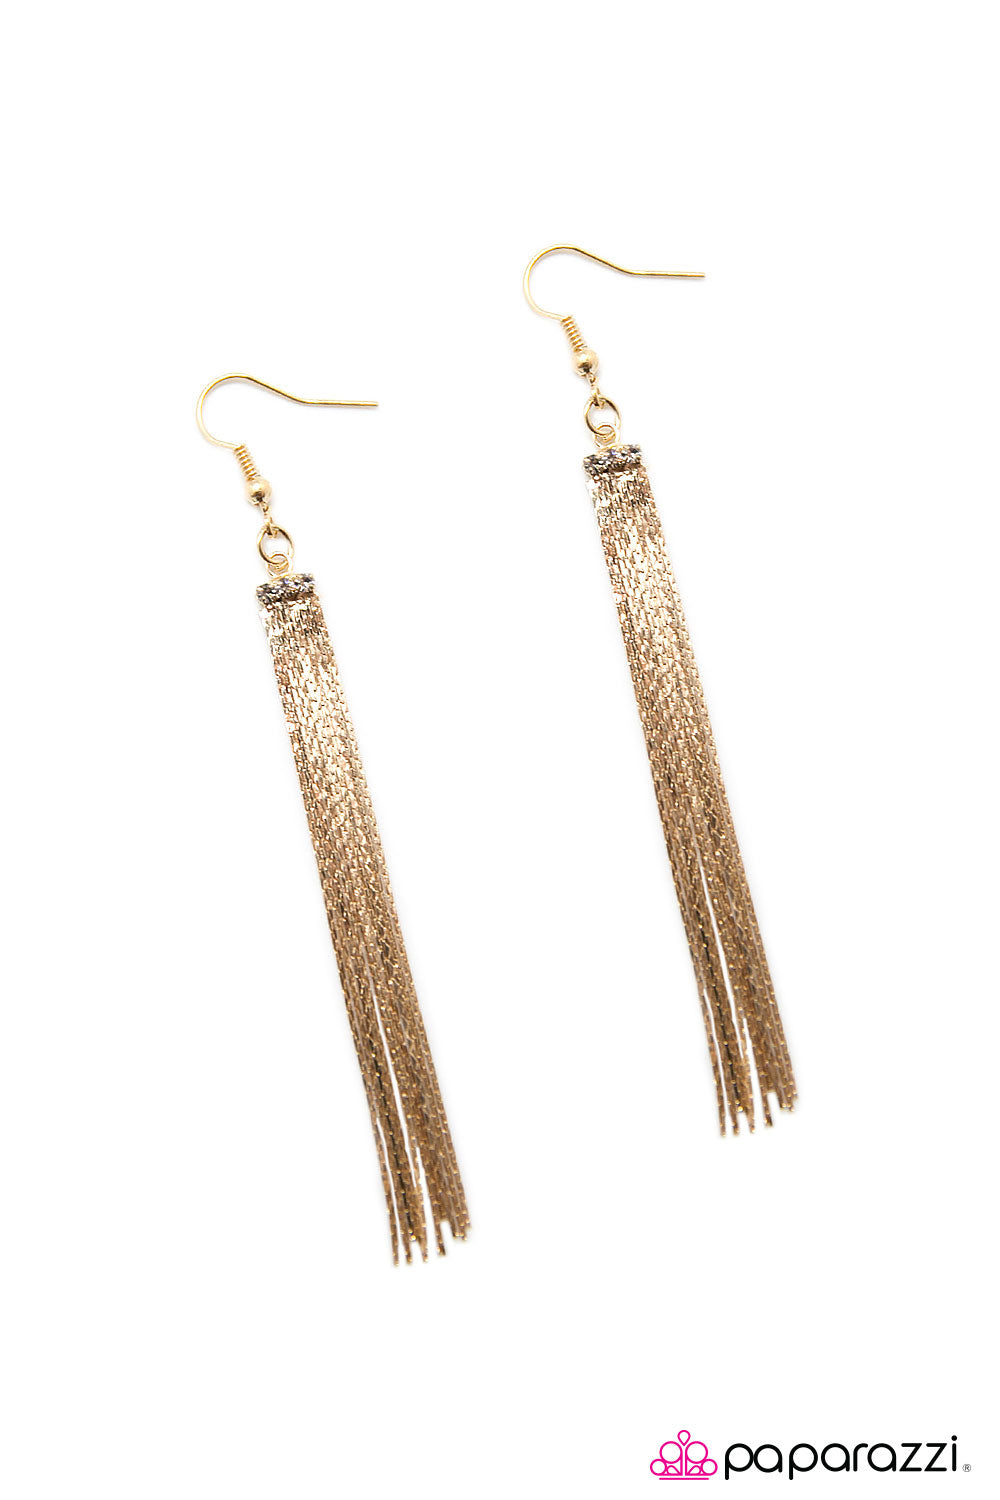 Paparazzi Accessories Night At The Oscars - Gold Earring - Be Adored Jewelry